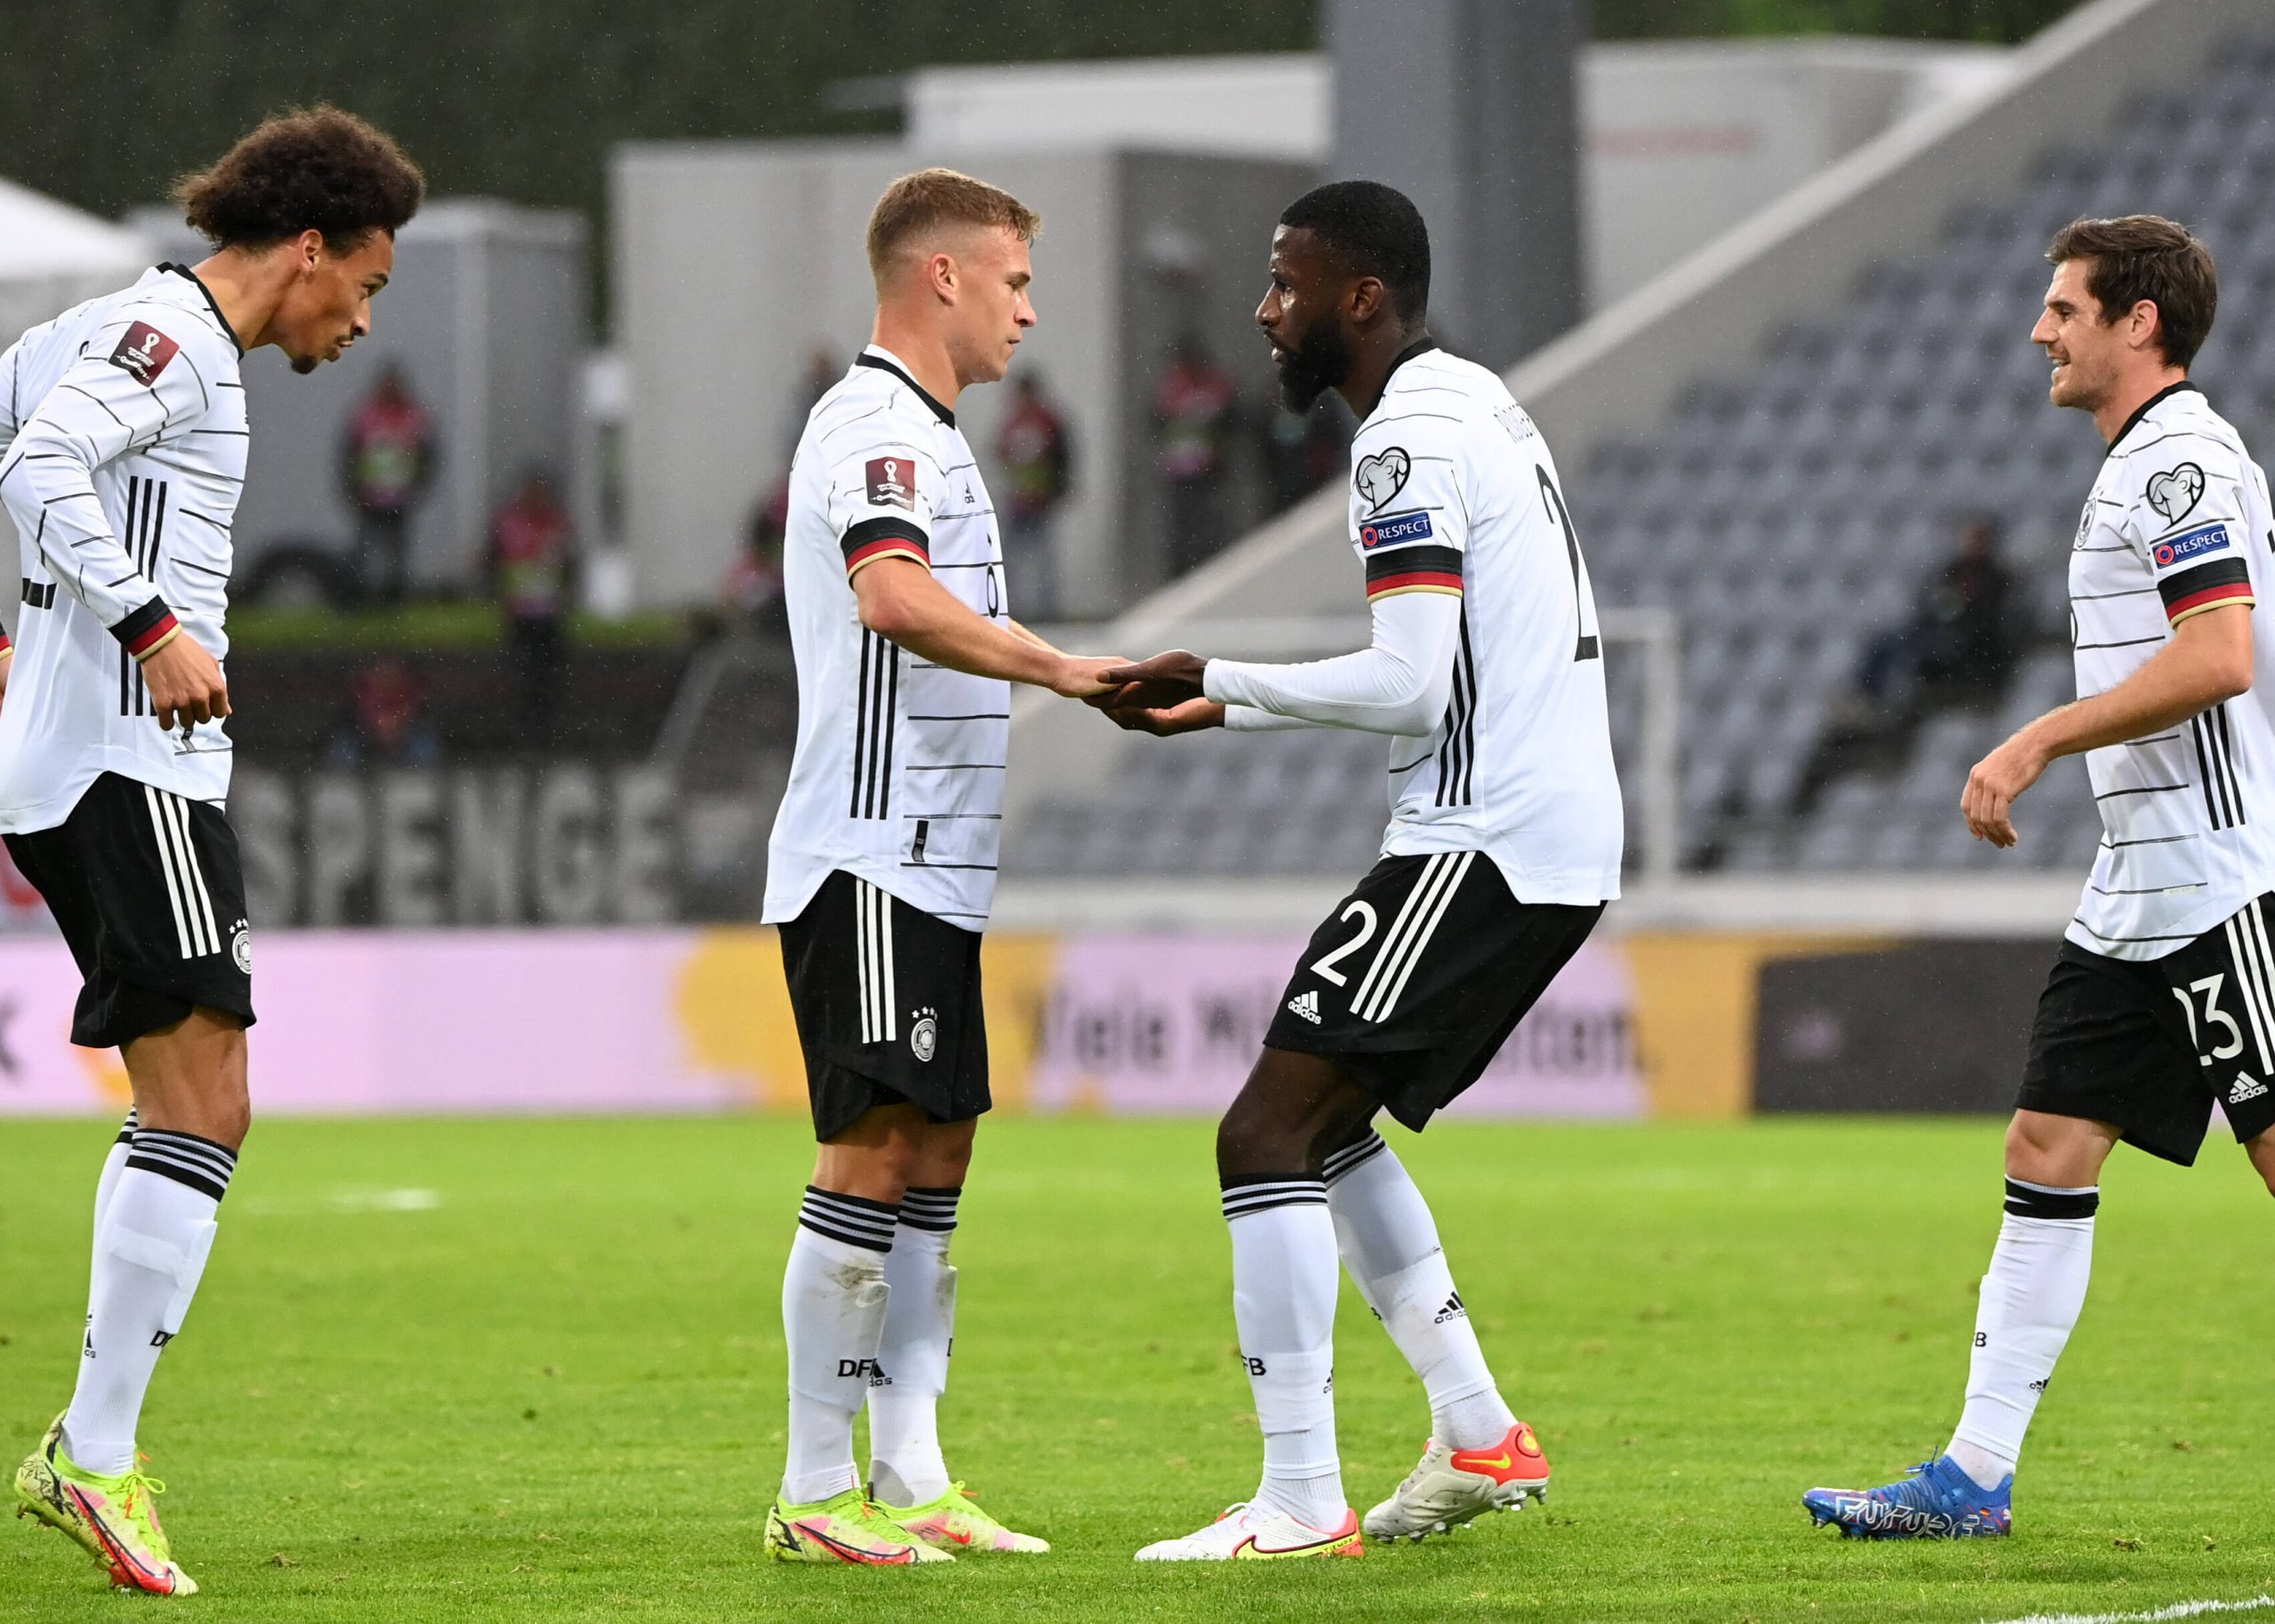 Germany beat Iceland in their World Cup qualifiers game.